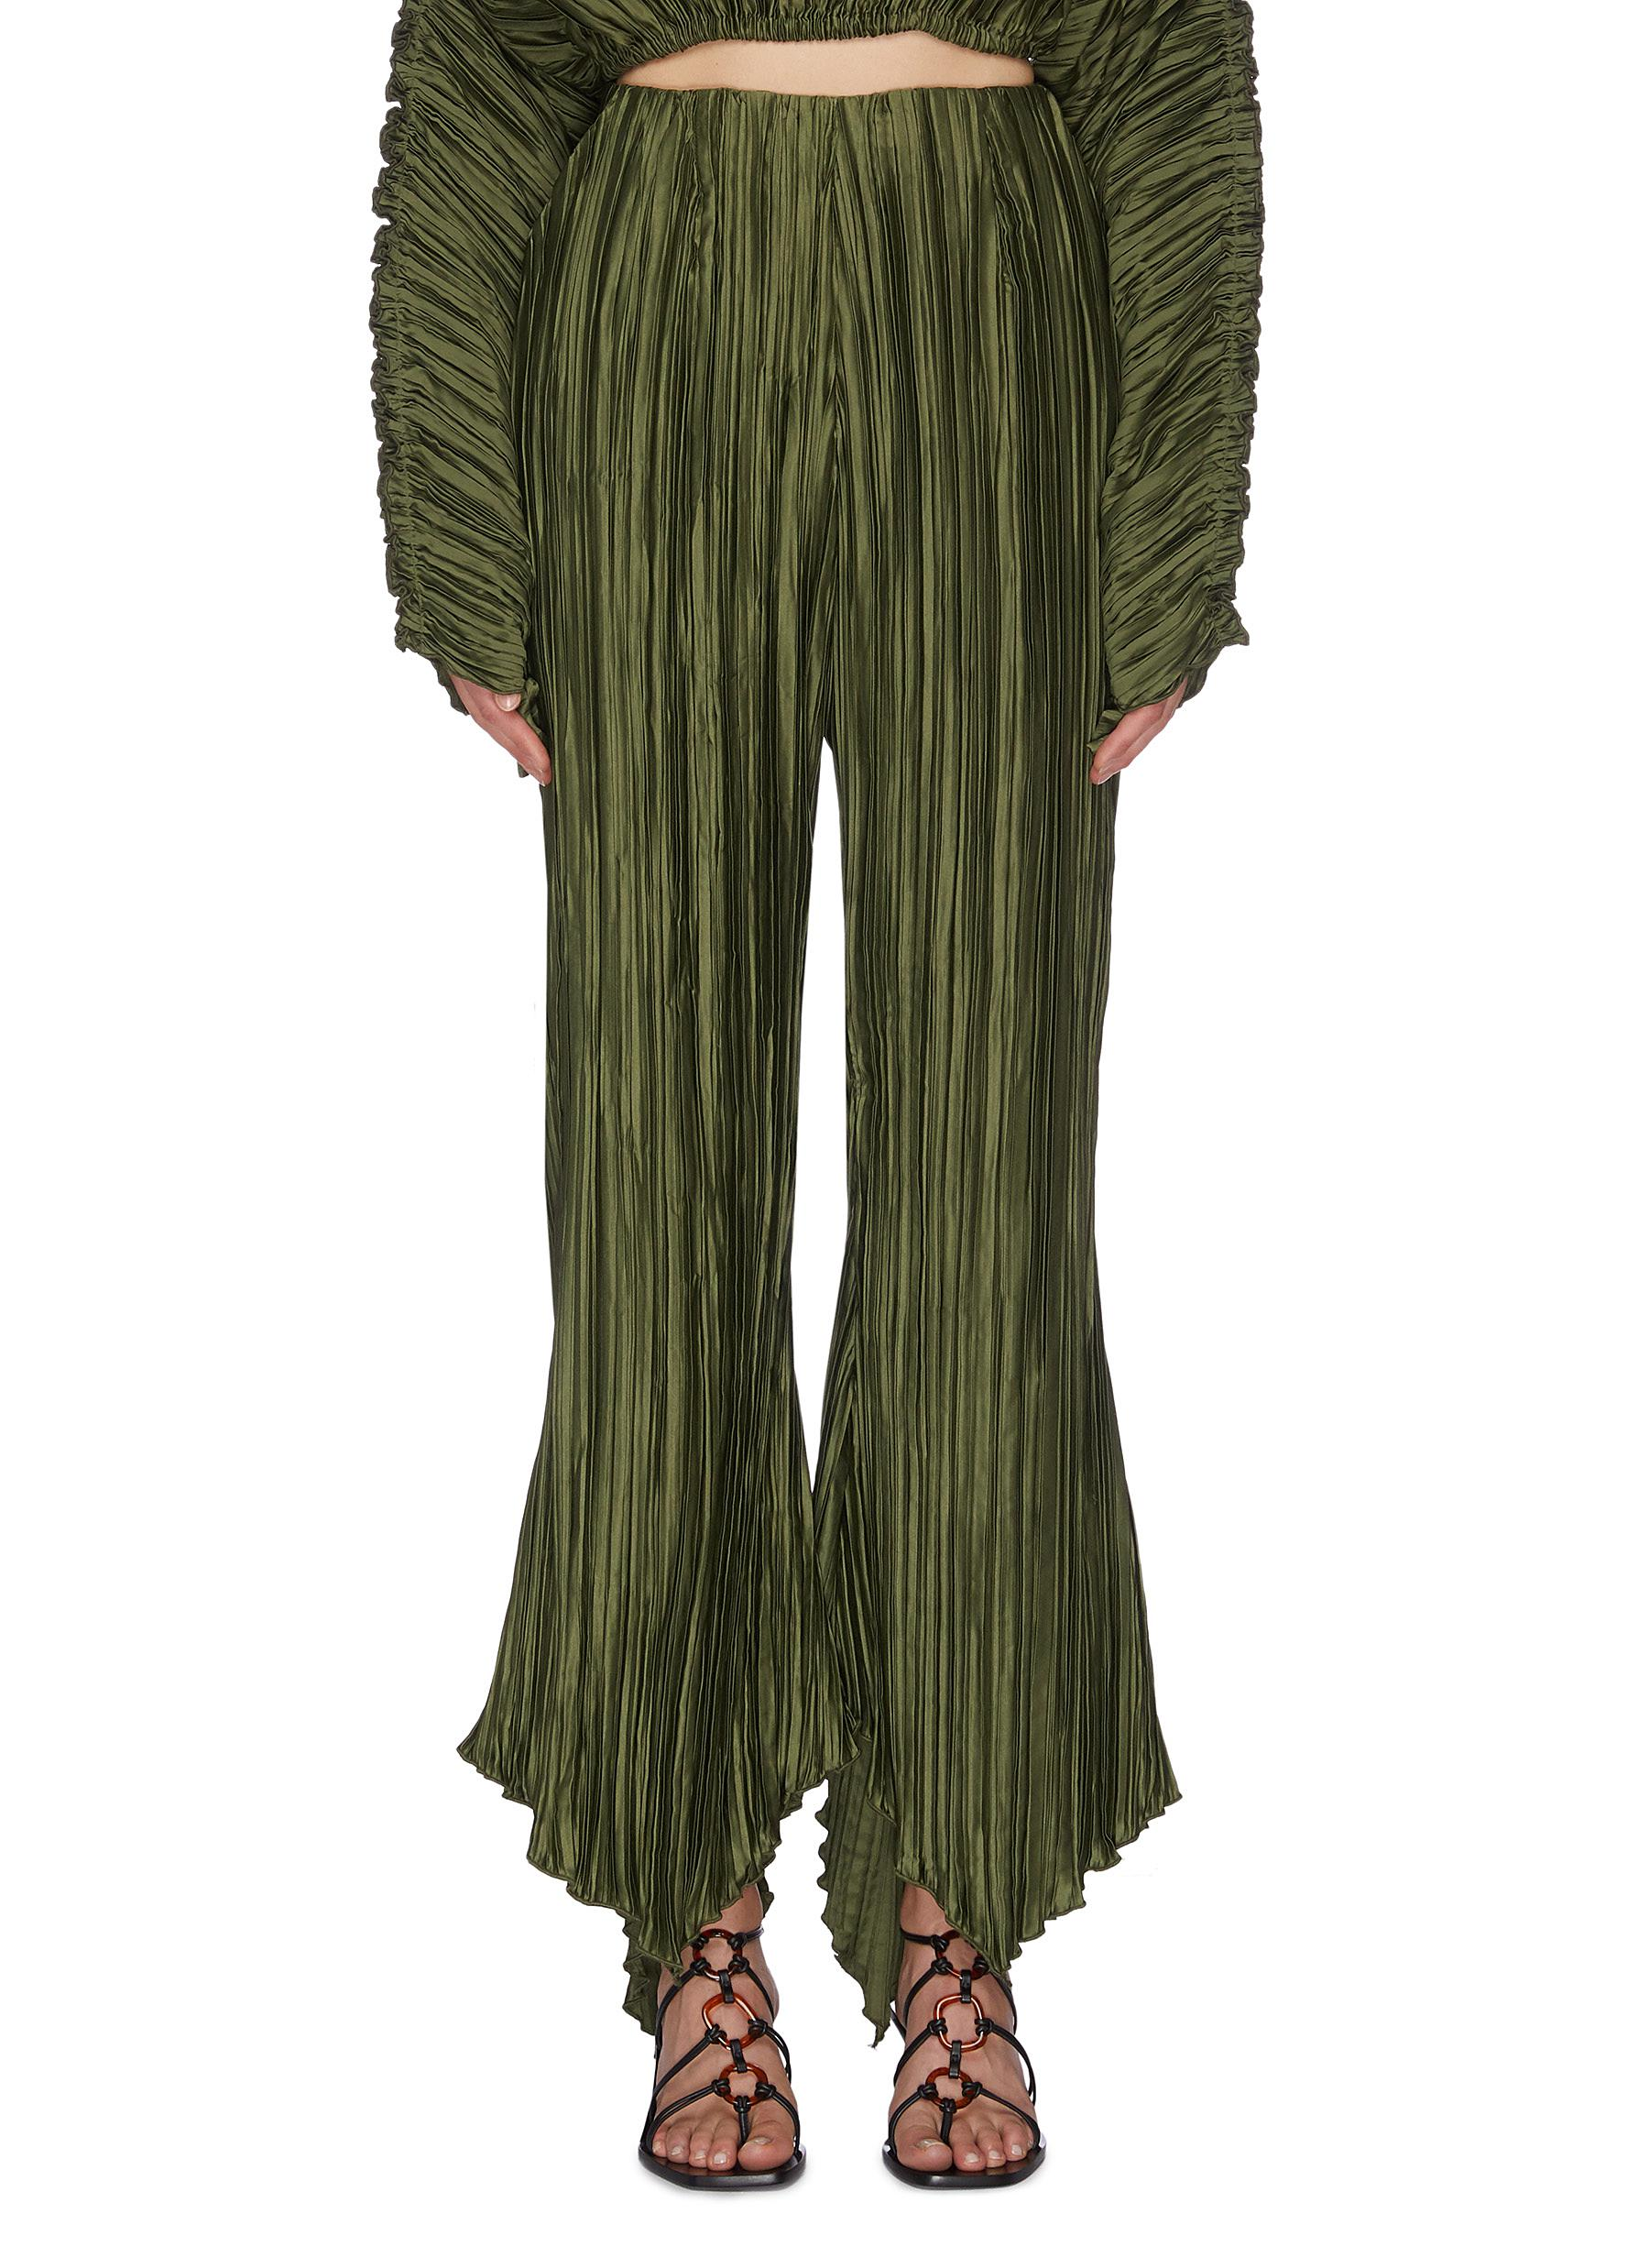 Buy Cult Gaia Pants & Shorts 'Keira' pleated pants